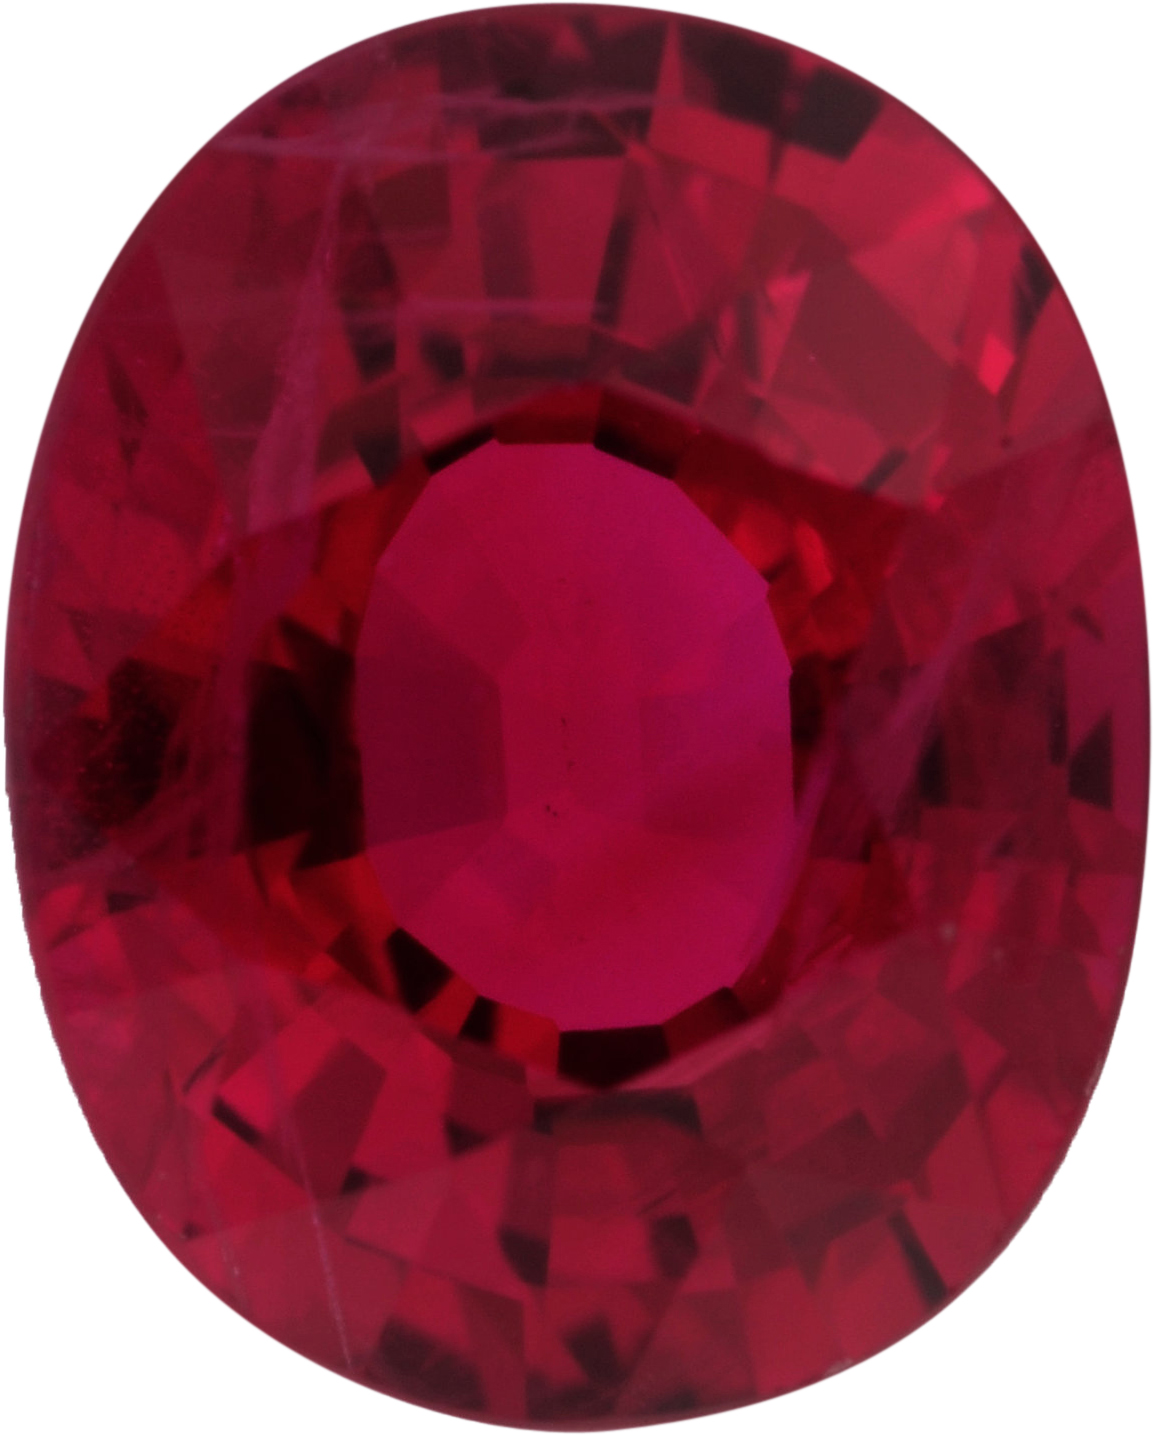 1.24 carats Ruby Loose Gemstone in Antique Cushion Cut, Strong Red, 7 x 5.64 mm